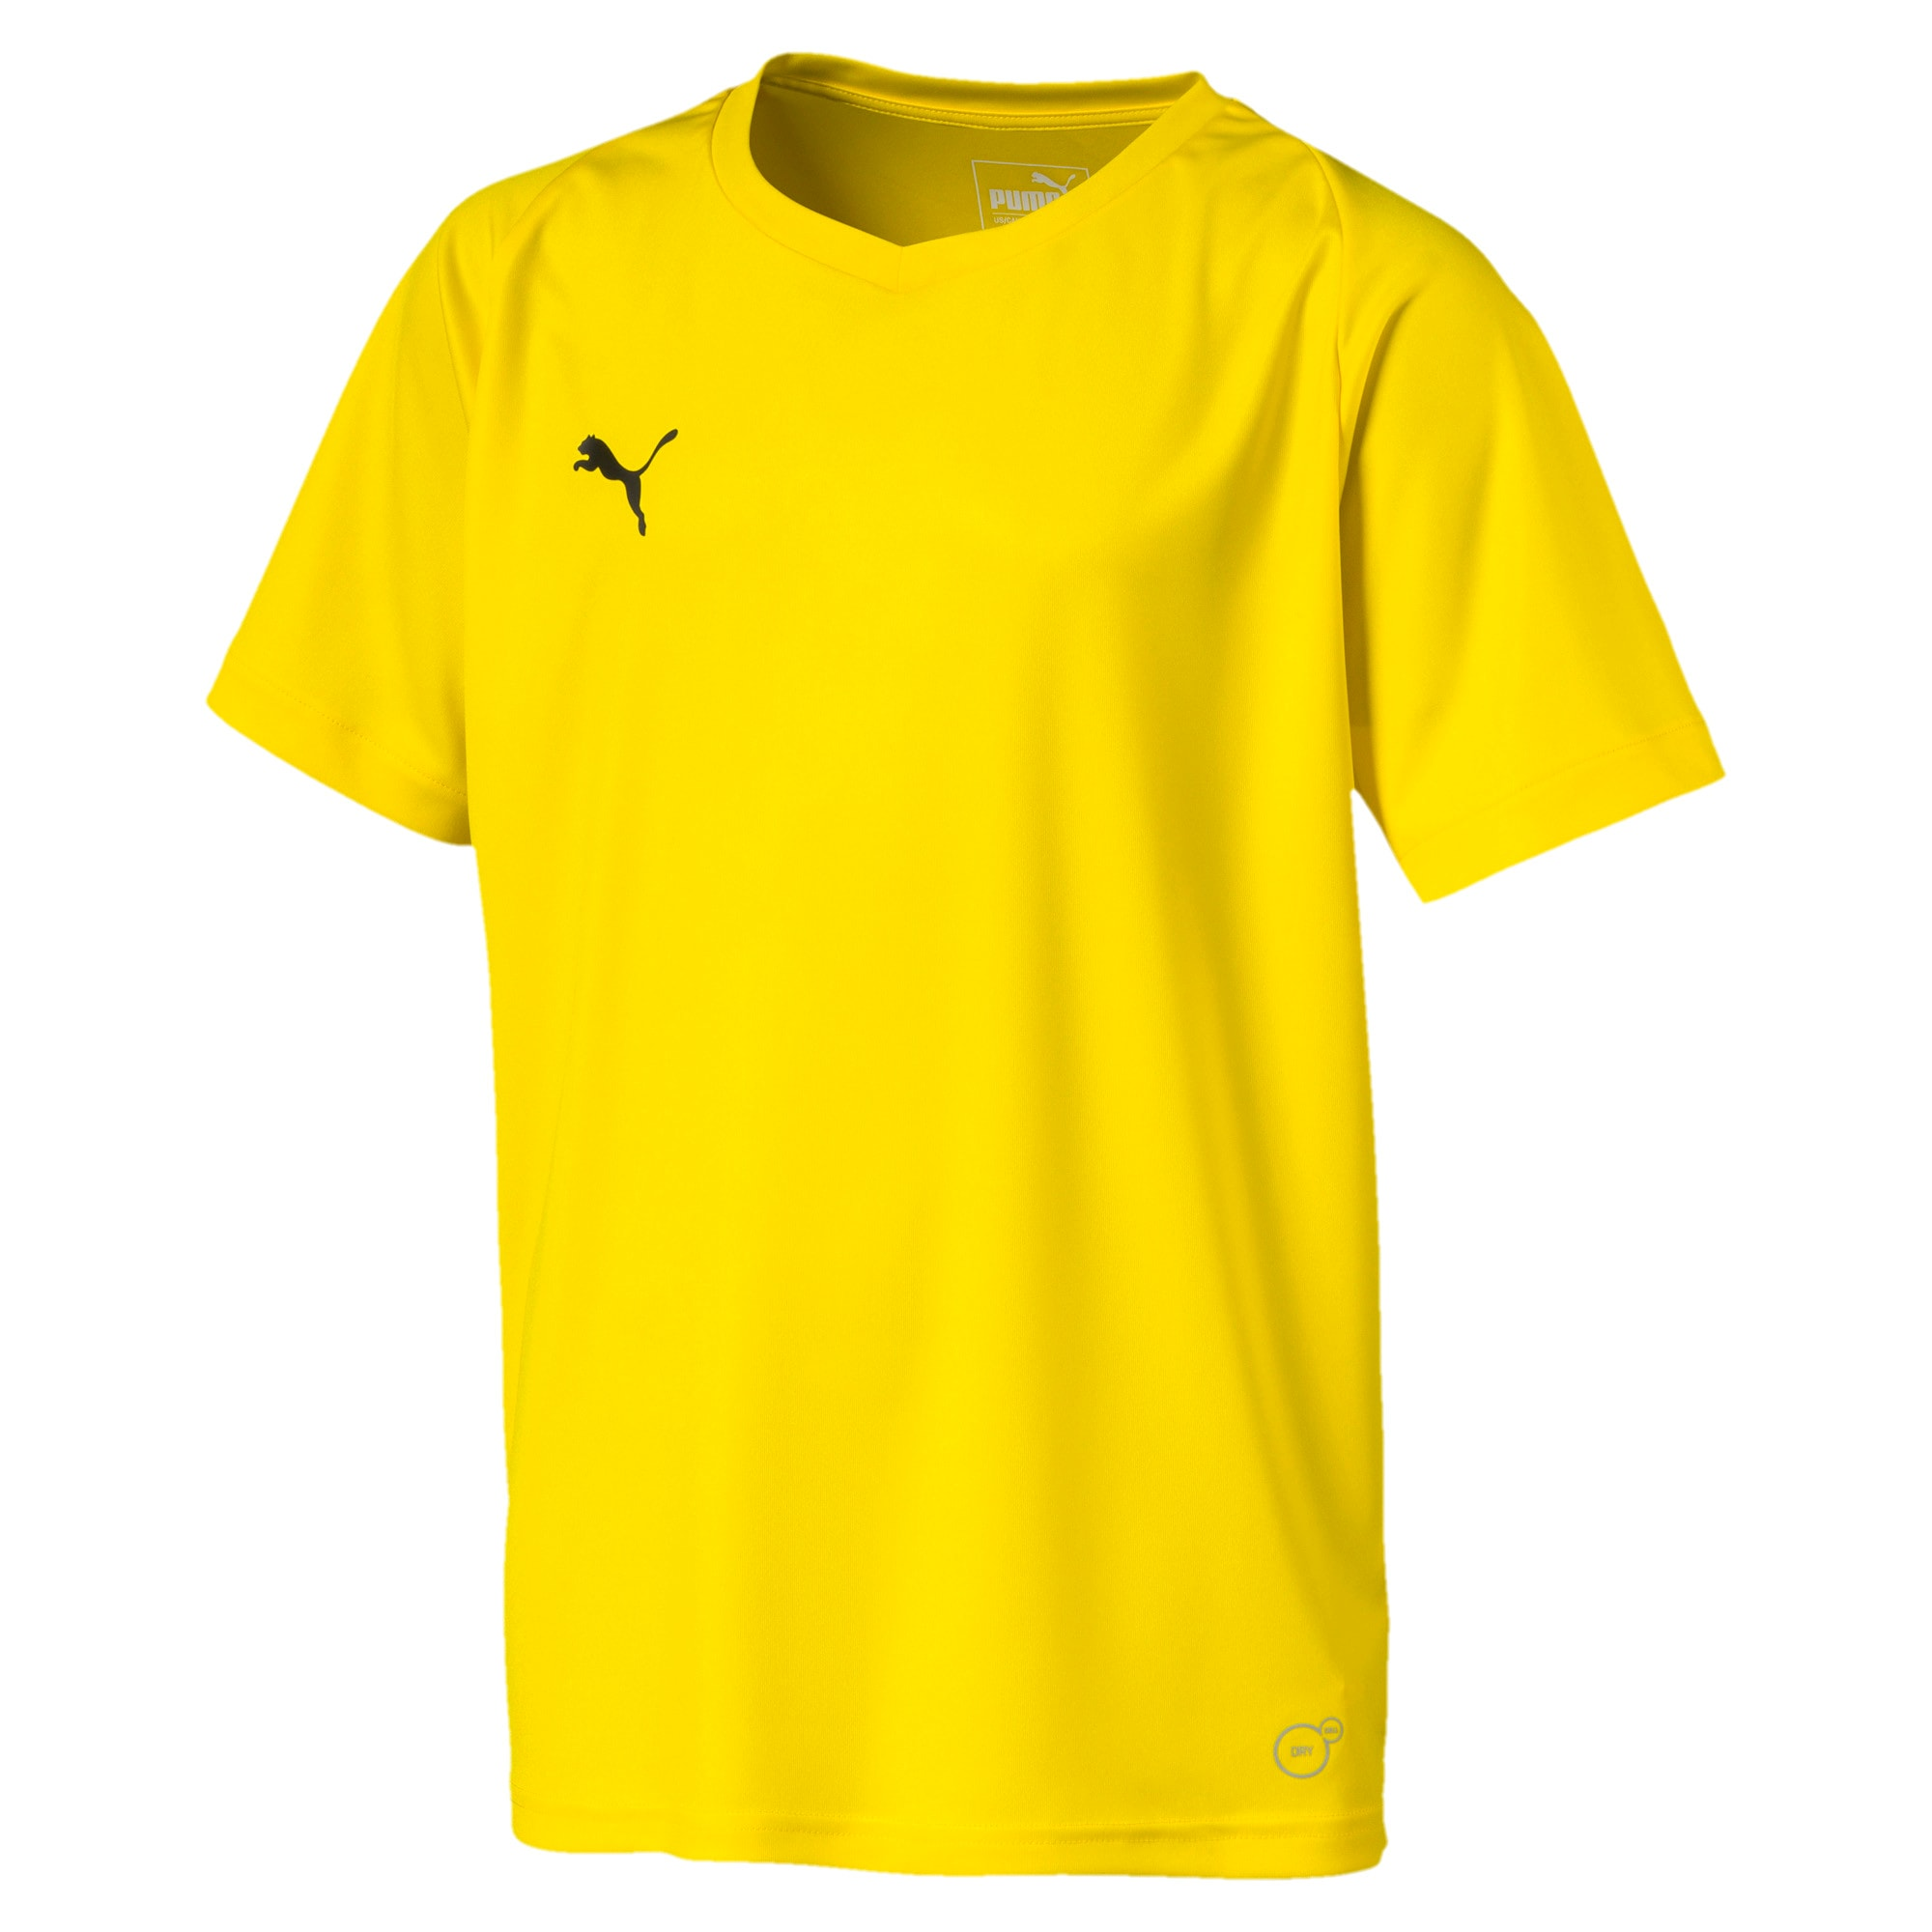 Thumbnail 1 of Liga Core Junior Football Jersey, Cyber Yellow-Puma Black, medium